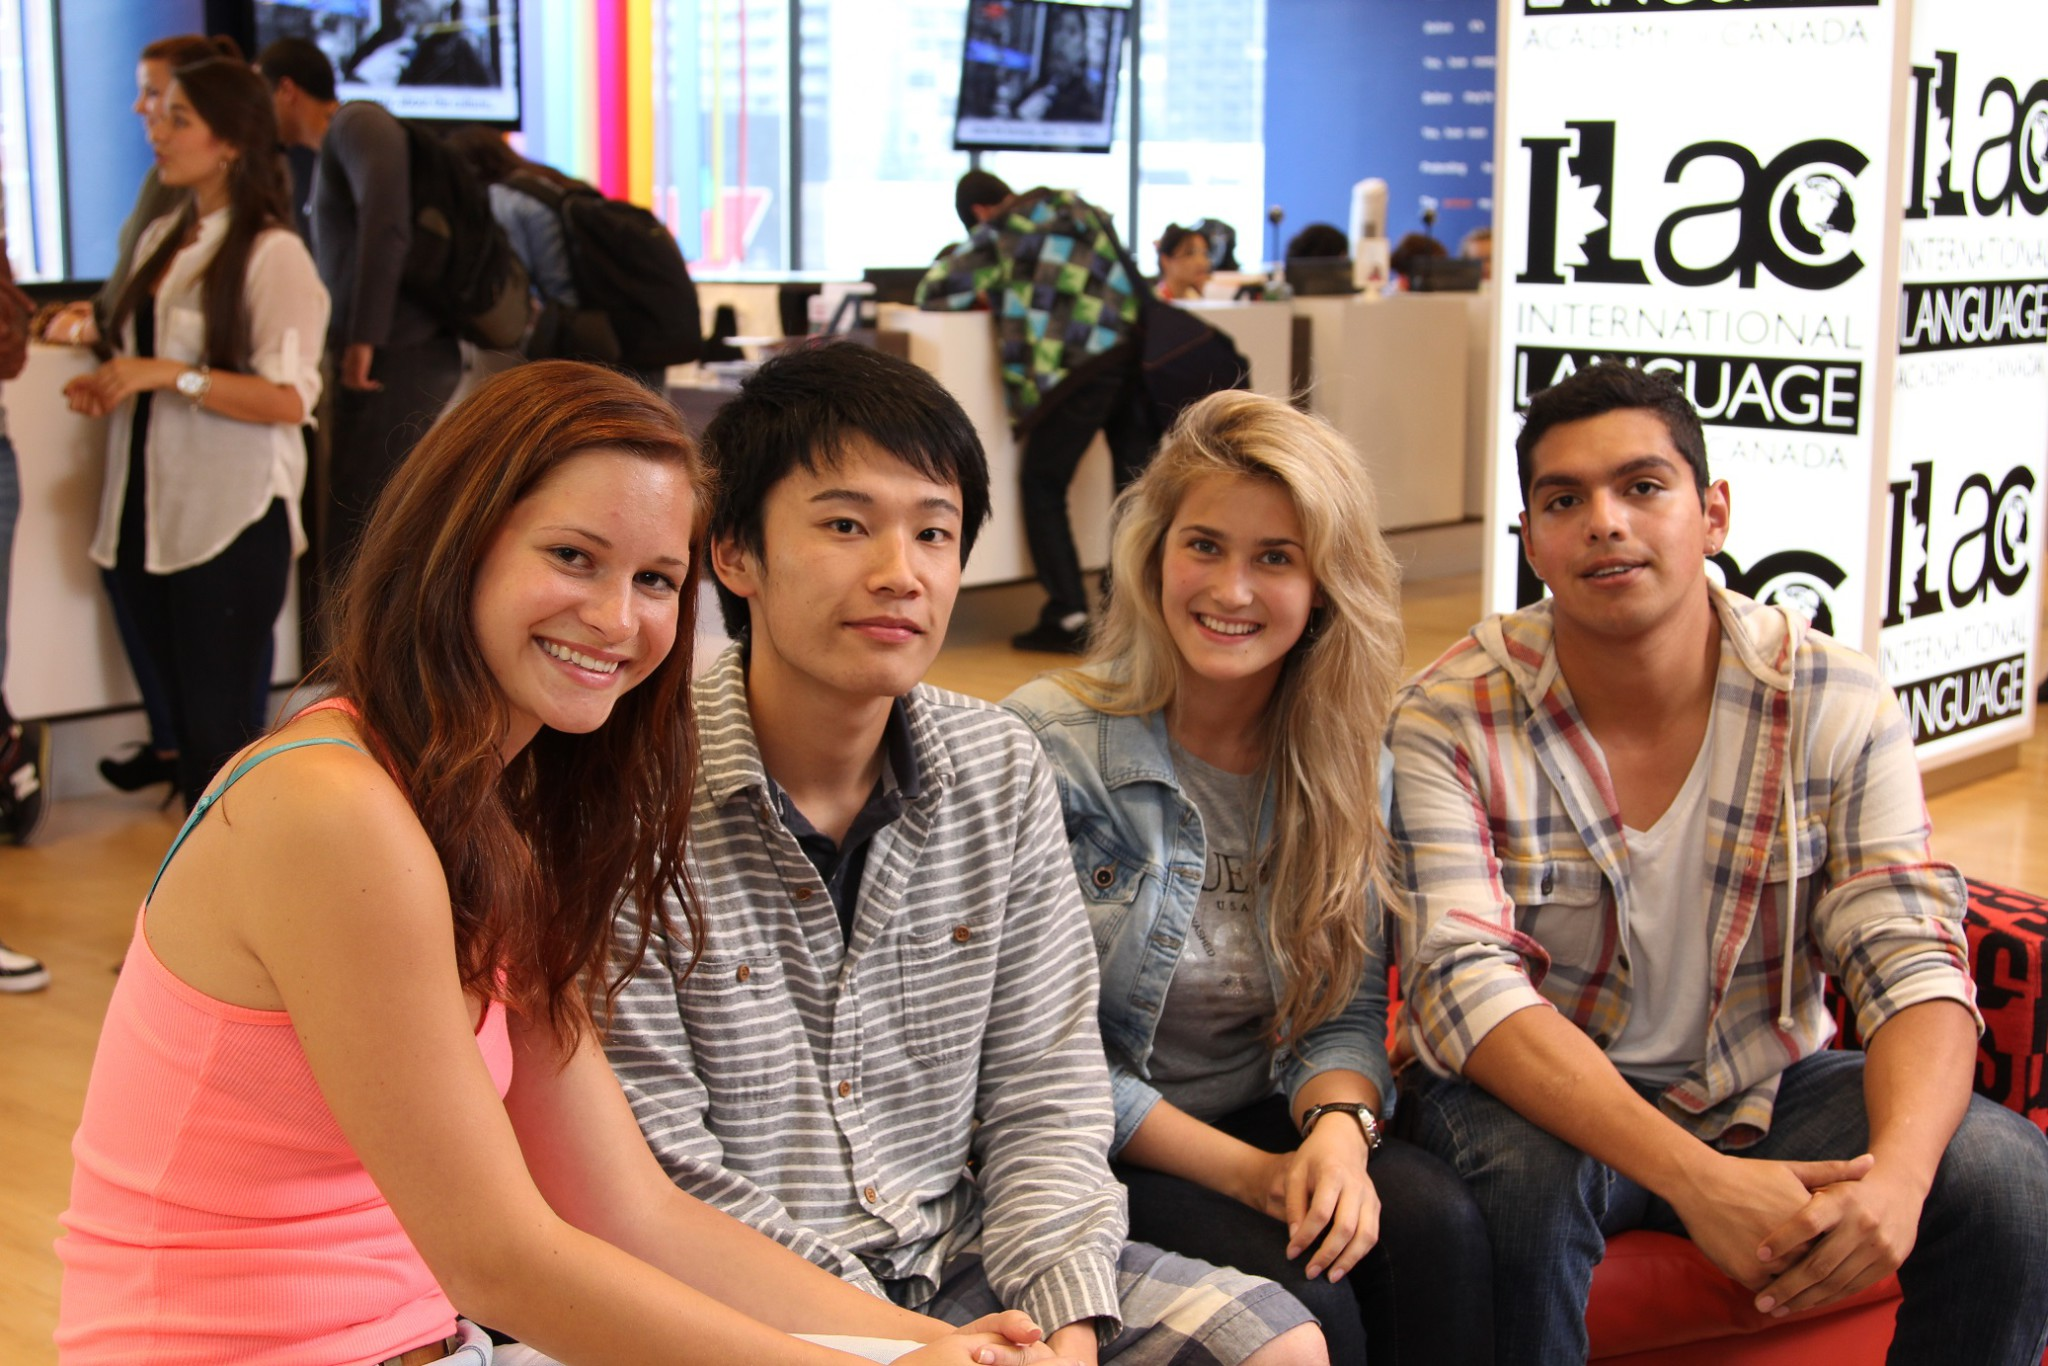 ILAC(International Language Academy of Canada)